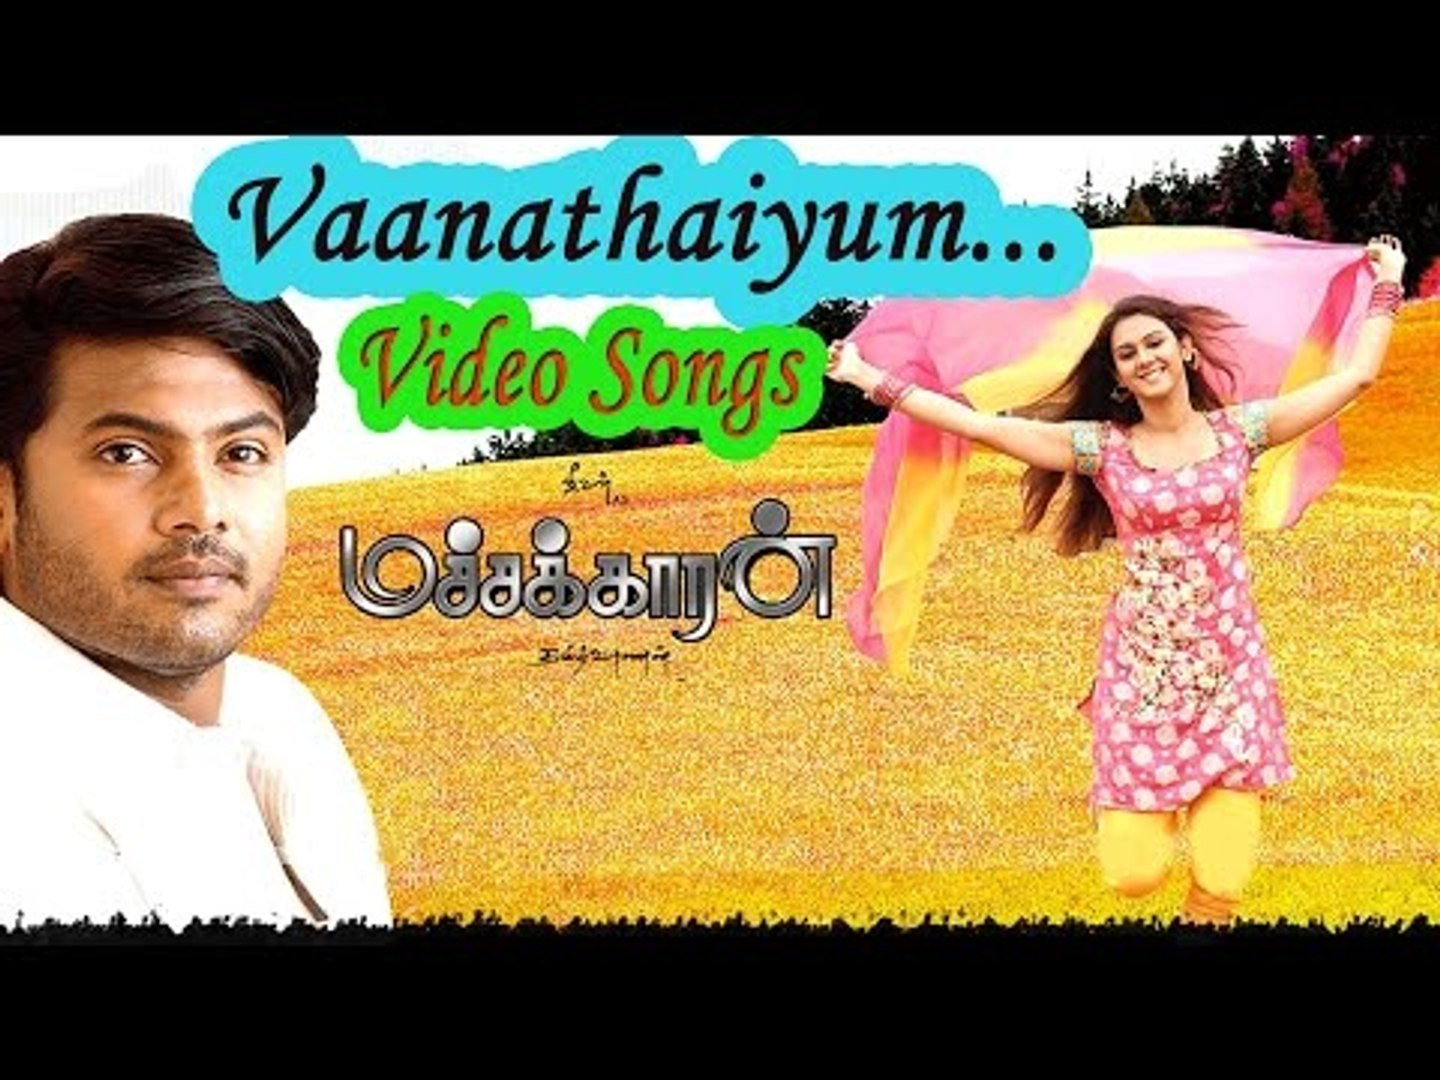 Machakkaran Tamil Movie | Vaanathaiyum Megathaiyum HD Video Song